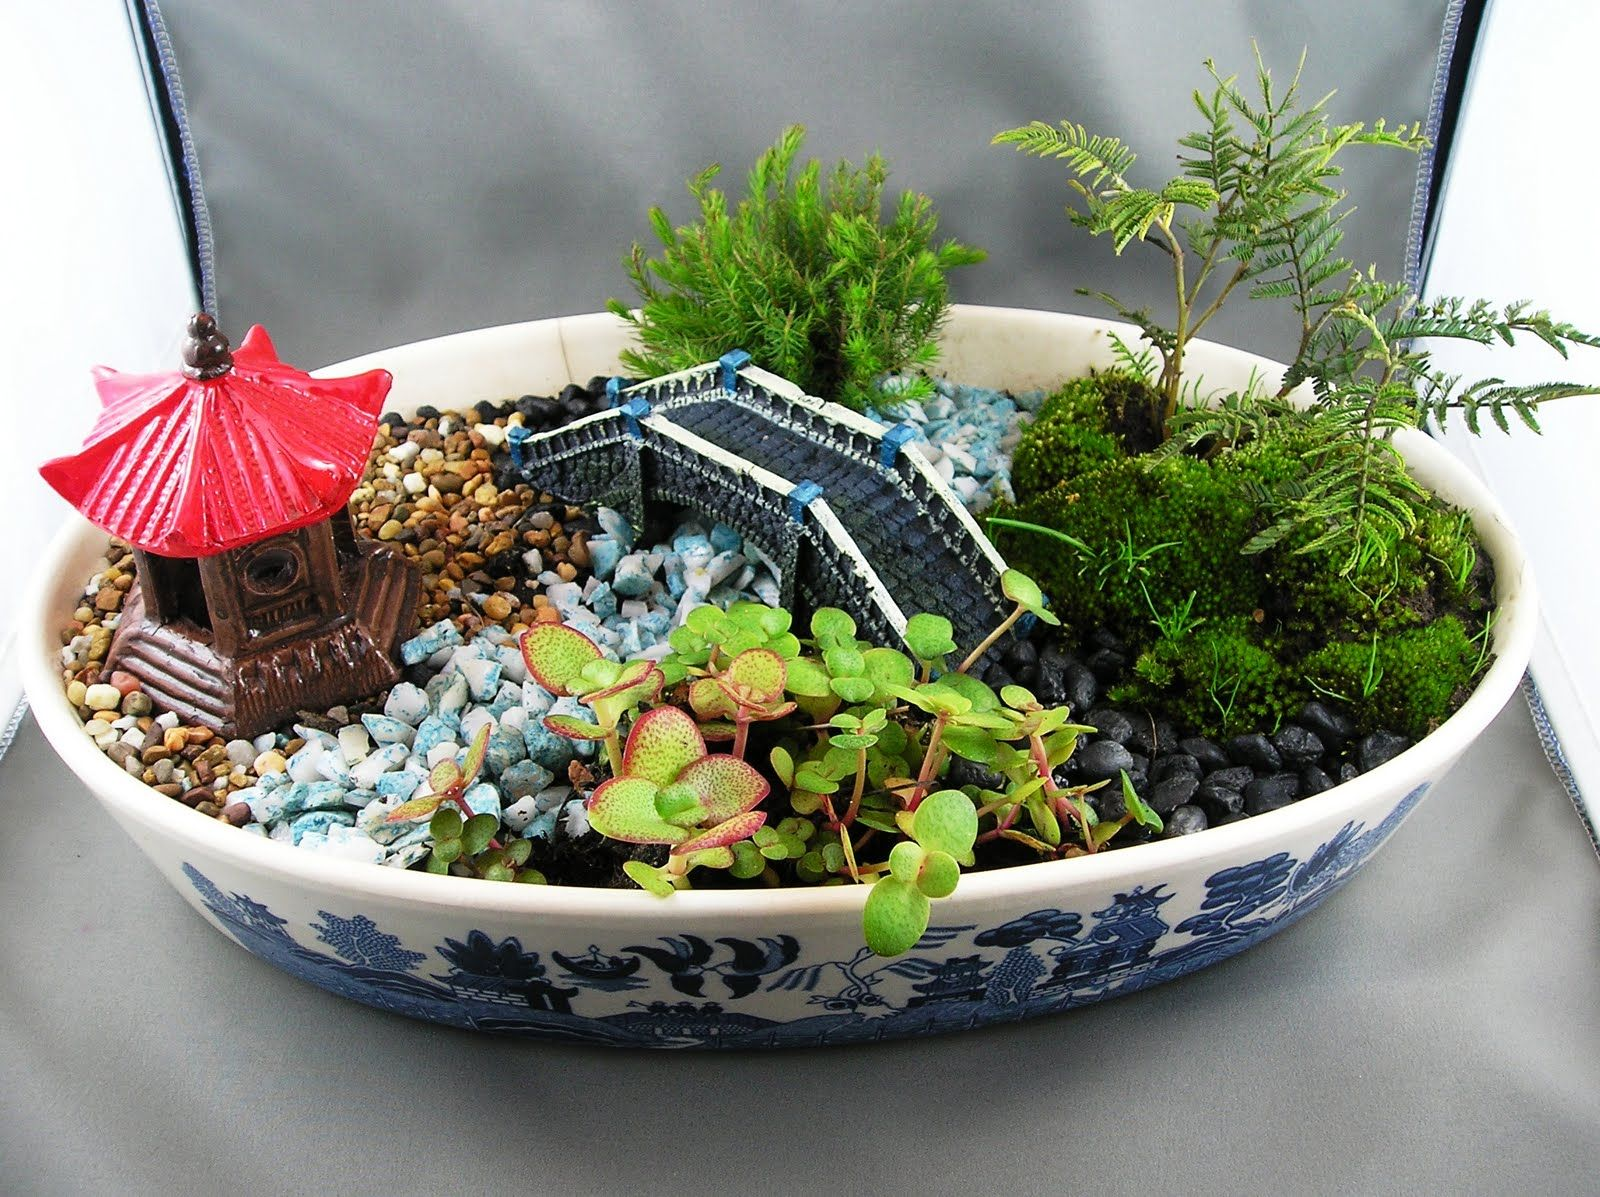 This Dish Garden Looks Like An Outside Replication Includes Pepples Looks Like Trees And Includes A Bridge Dish Garden Succulents Indoor Miniature Garden